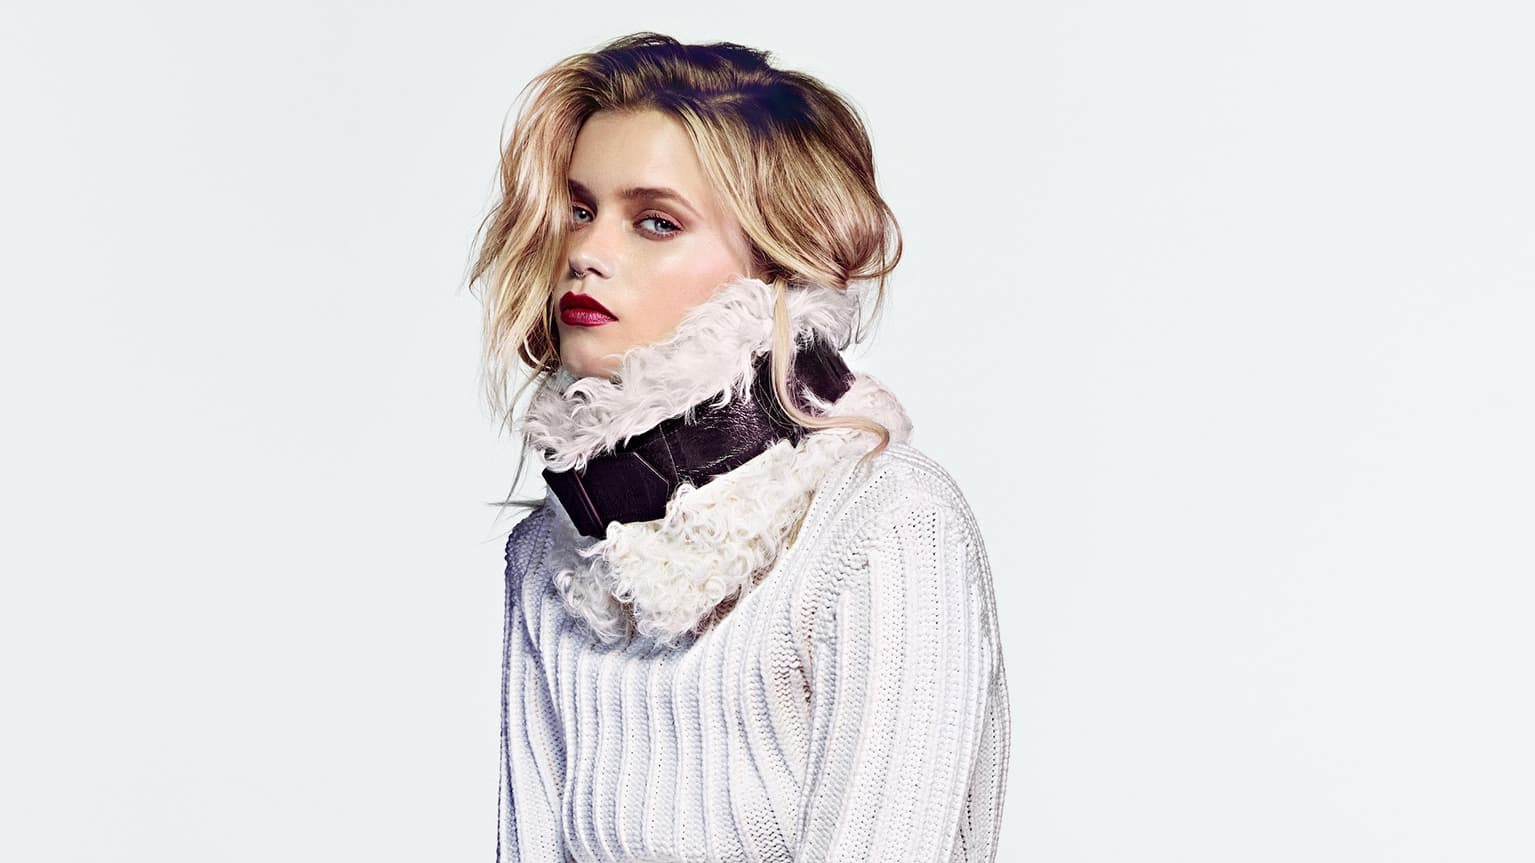 Pictures of Haircut Abbey Lee for Desktop